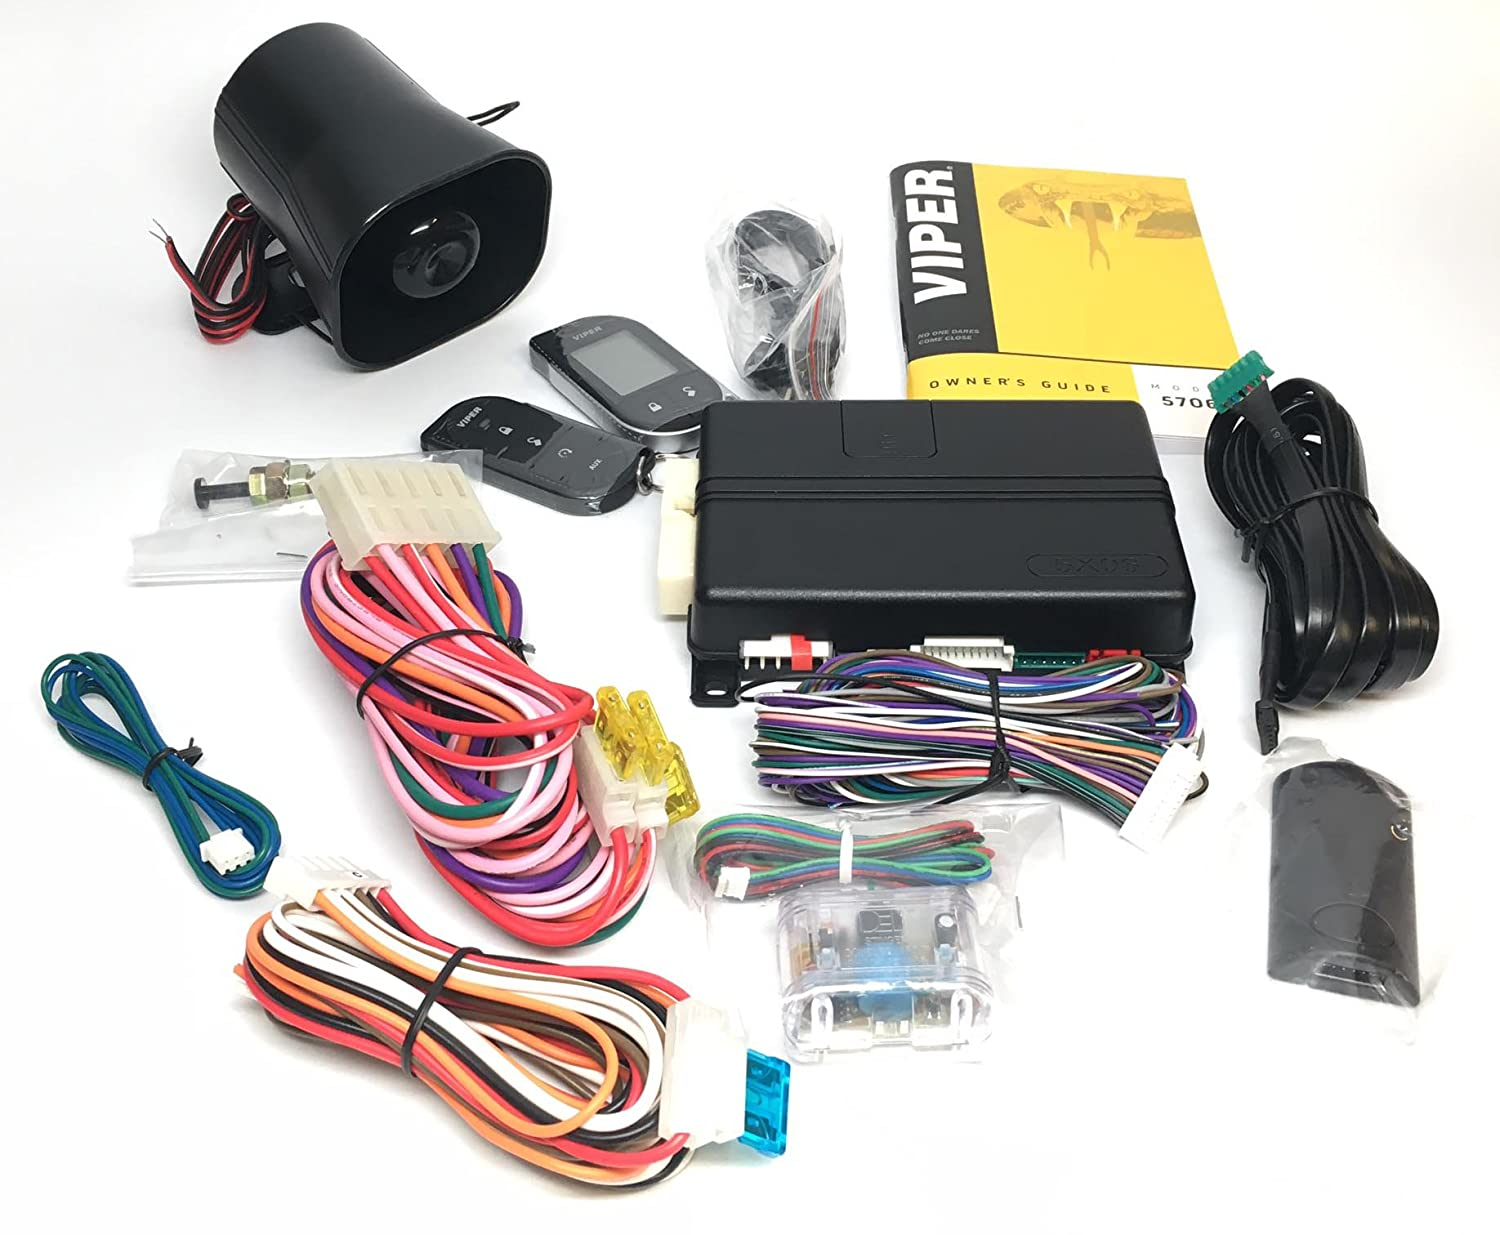 Click /& ADD Viper 5706V 2-Way LCD Alarm /& Remote Car Starter 1 Mile Range /& Directed DB3 XPressKit DEI Databus ALL Combo Bypass//Door Lock Interface Bundle Package